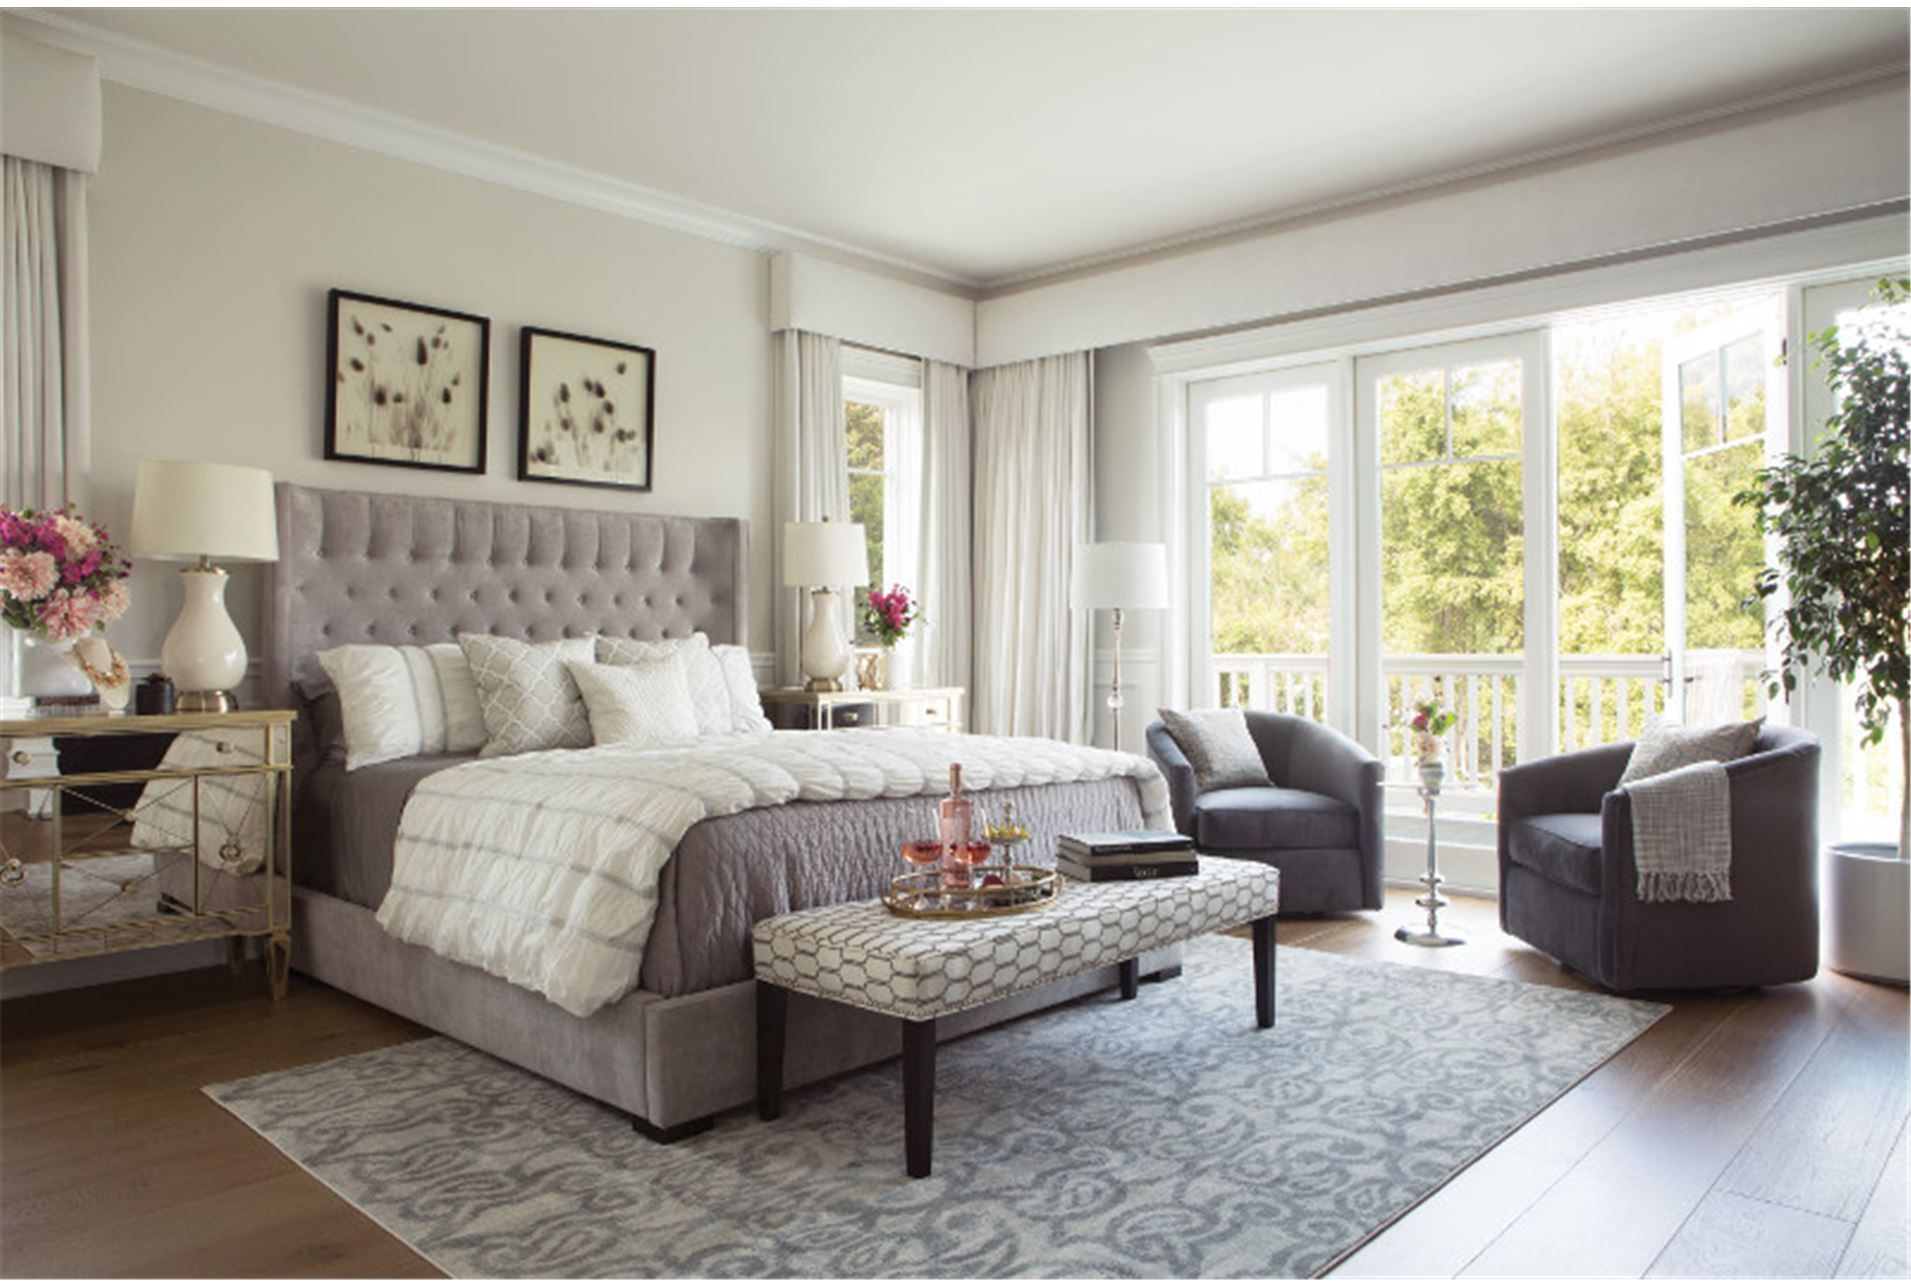 living spaces bedroom furniture. Living Spaces - 87452 Room Madeline California King Upholstered Panel Bed $1,295 5.0 Out Of 5(8) Bedroom Furniture E